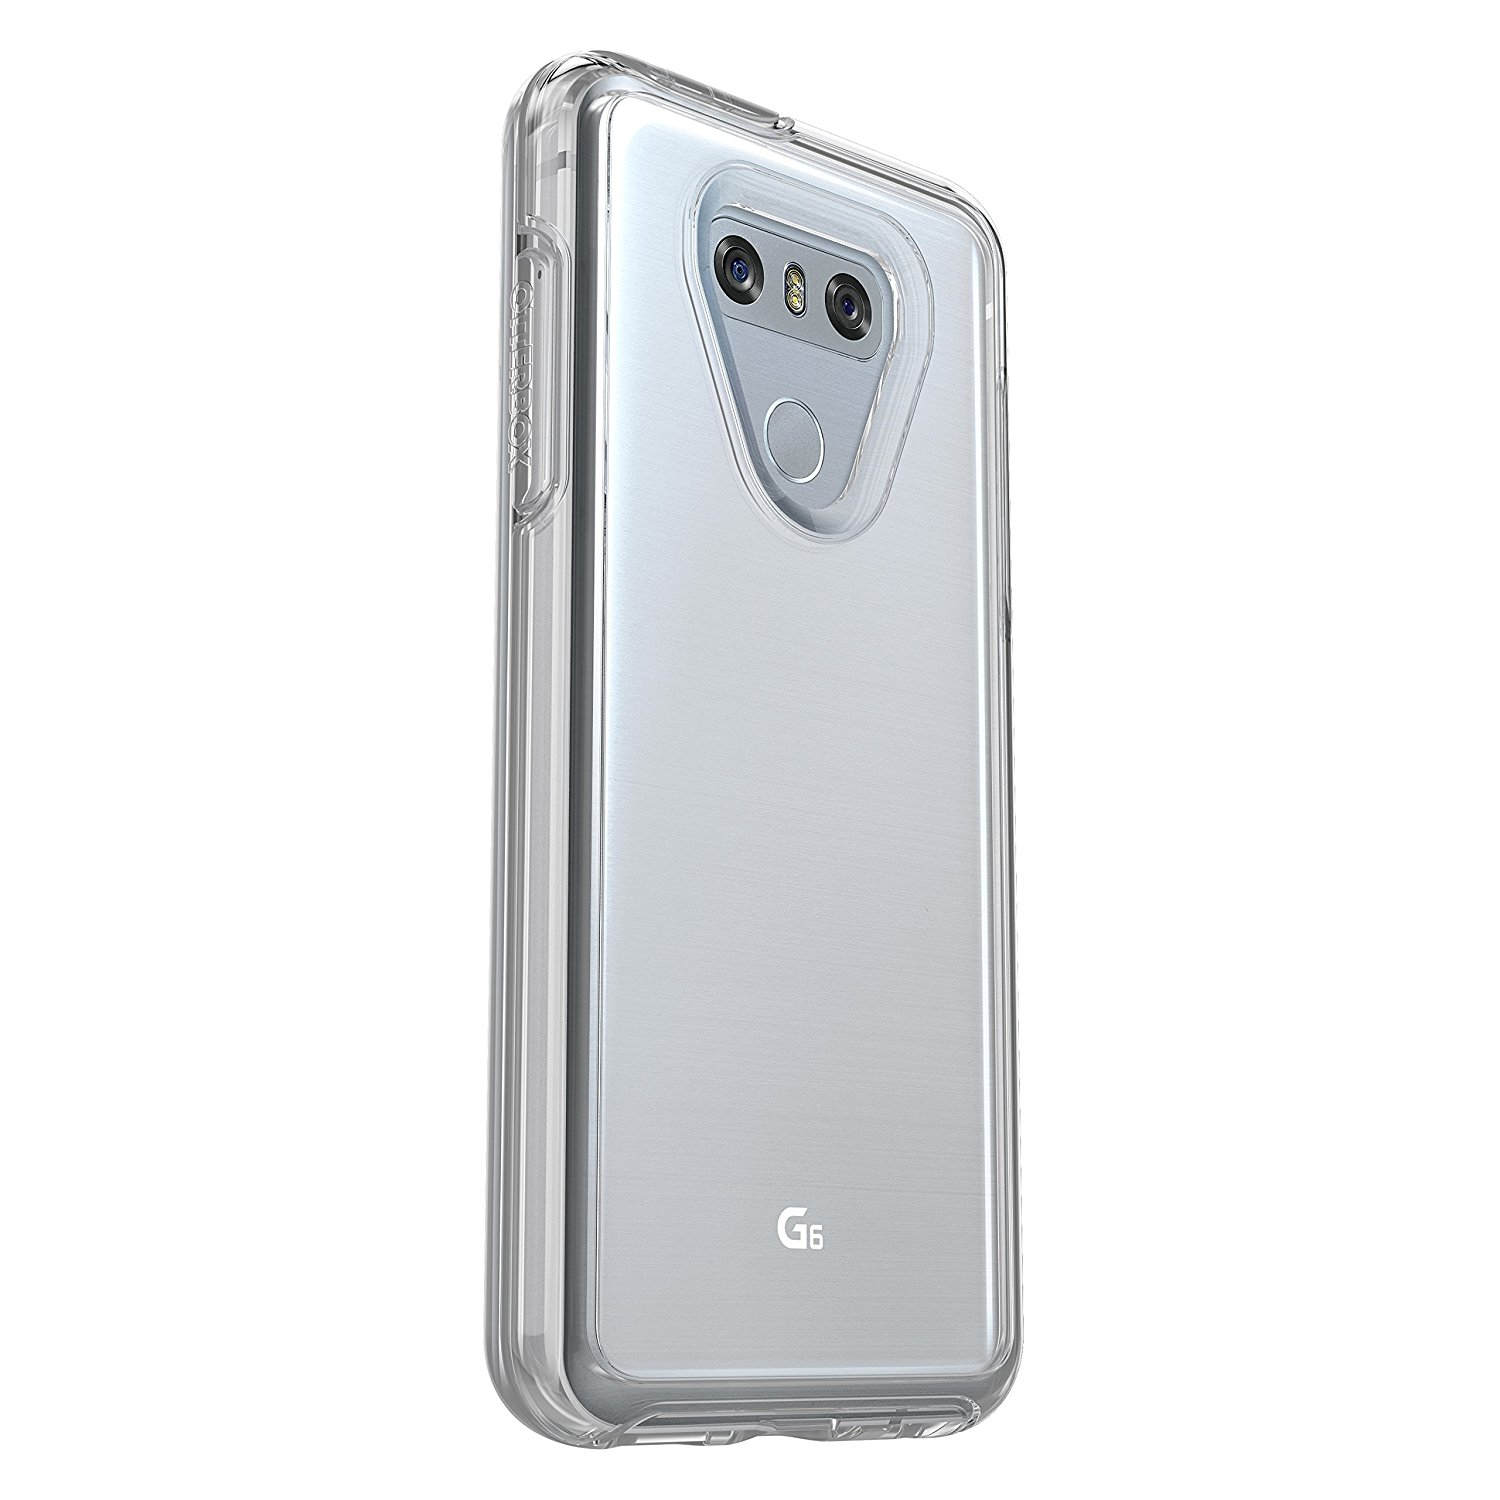 more photos 62a99 26e76 Details about OtterBox Symmetry Series Protective Case For LG G6 - Clear